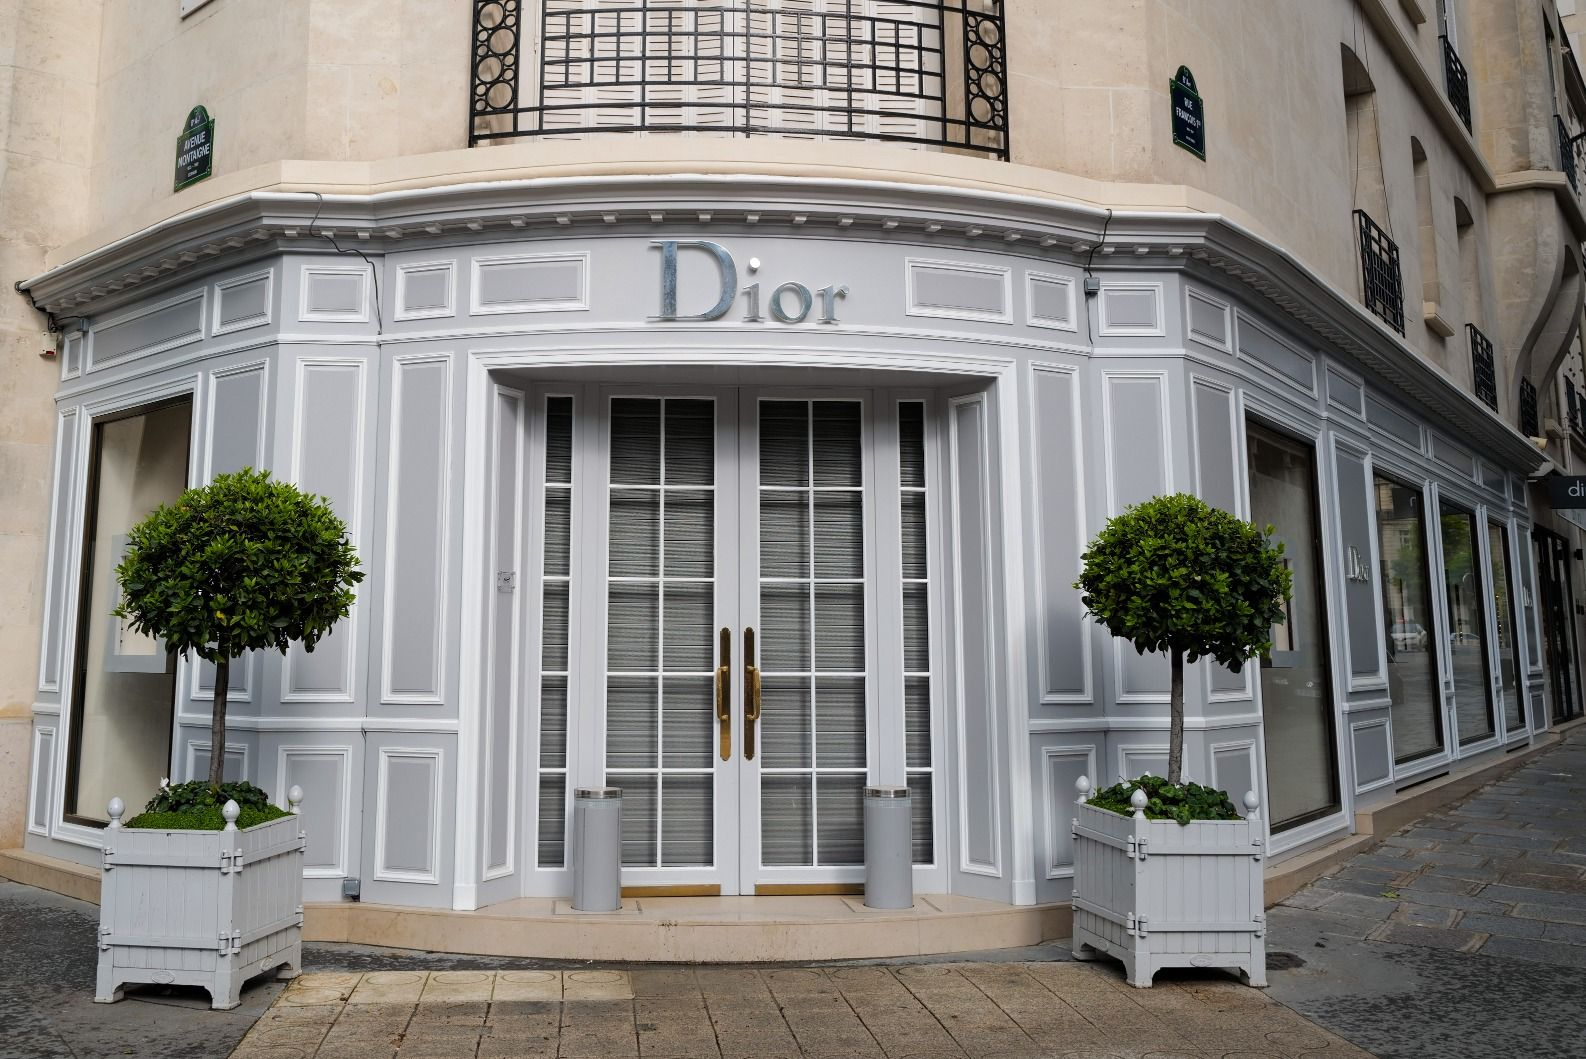 Dior is opening a new restaurant in Paris by Chef Jean Imbert